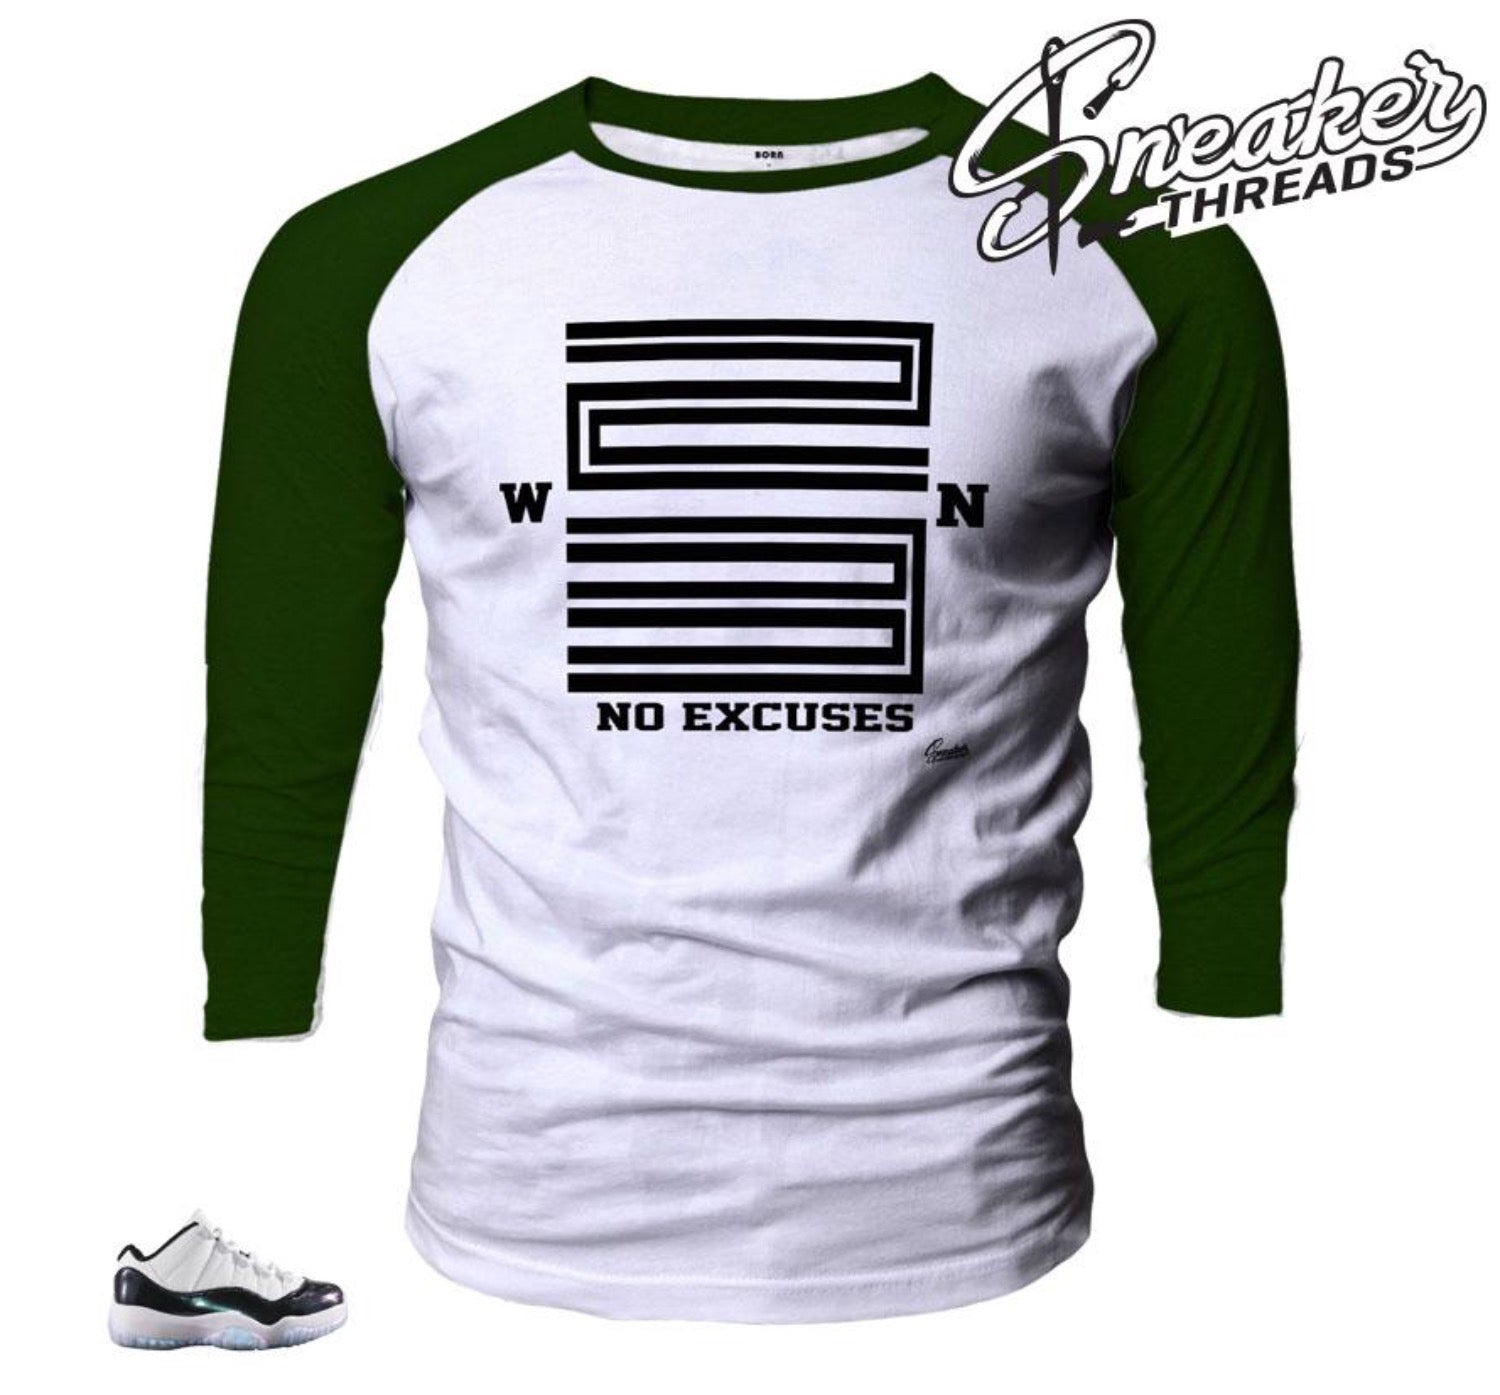 4c97795f4ff2e9 Jordan 11 Easter Shirts match retro 11 emerald green sneaker tees.